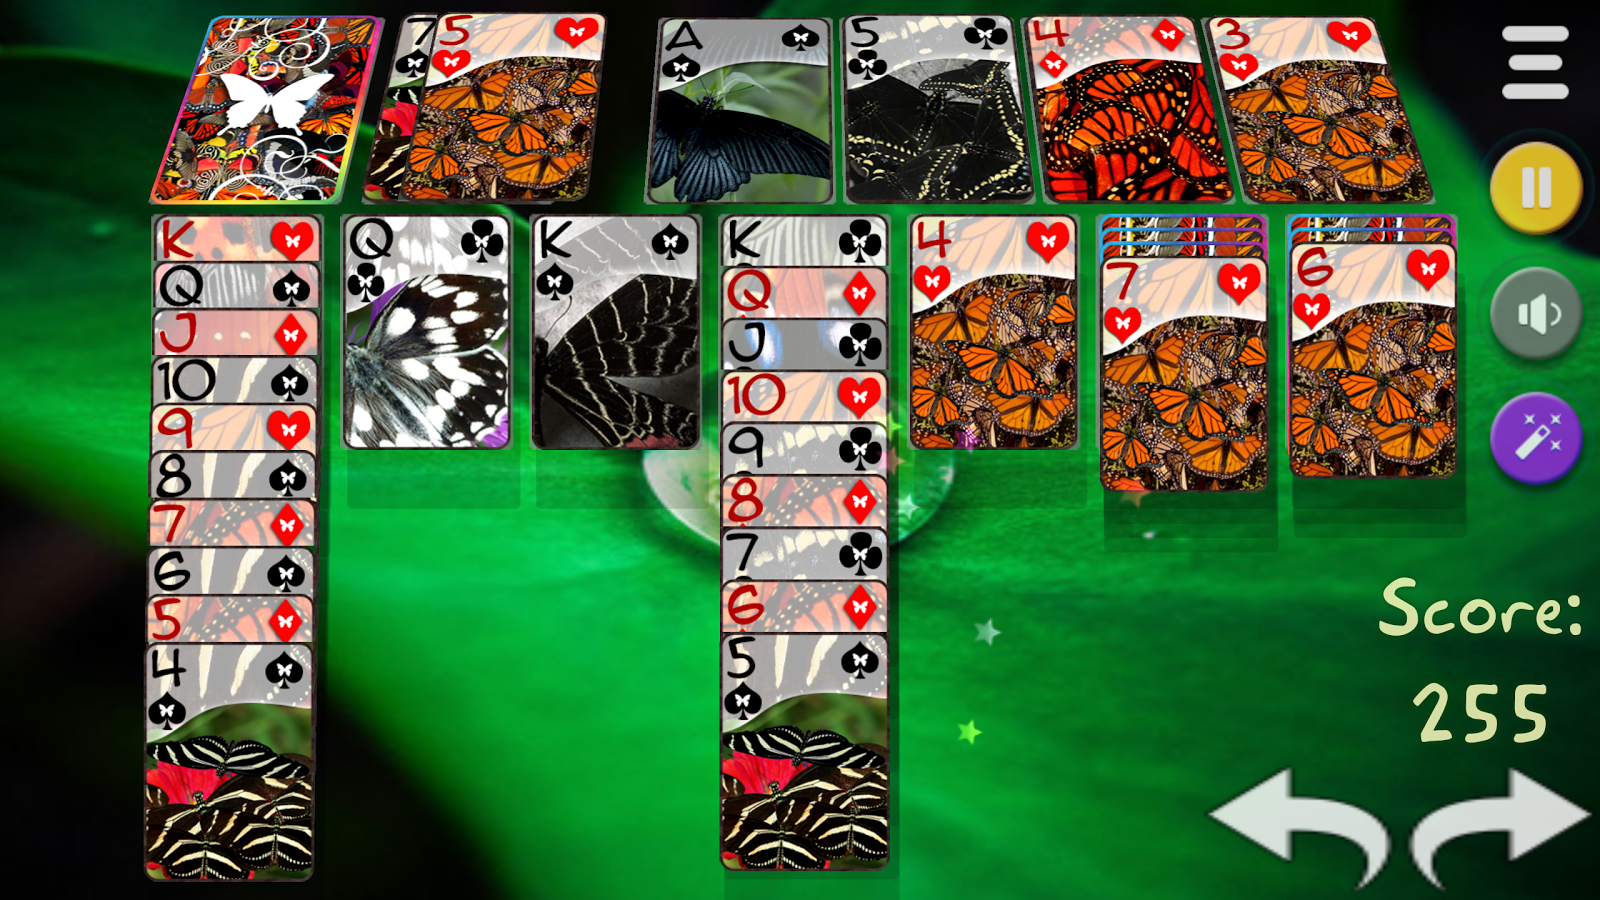 Solitaire 3D - Solitaire Game- screenshot